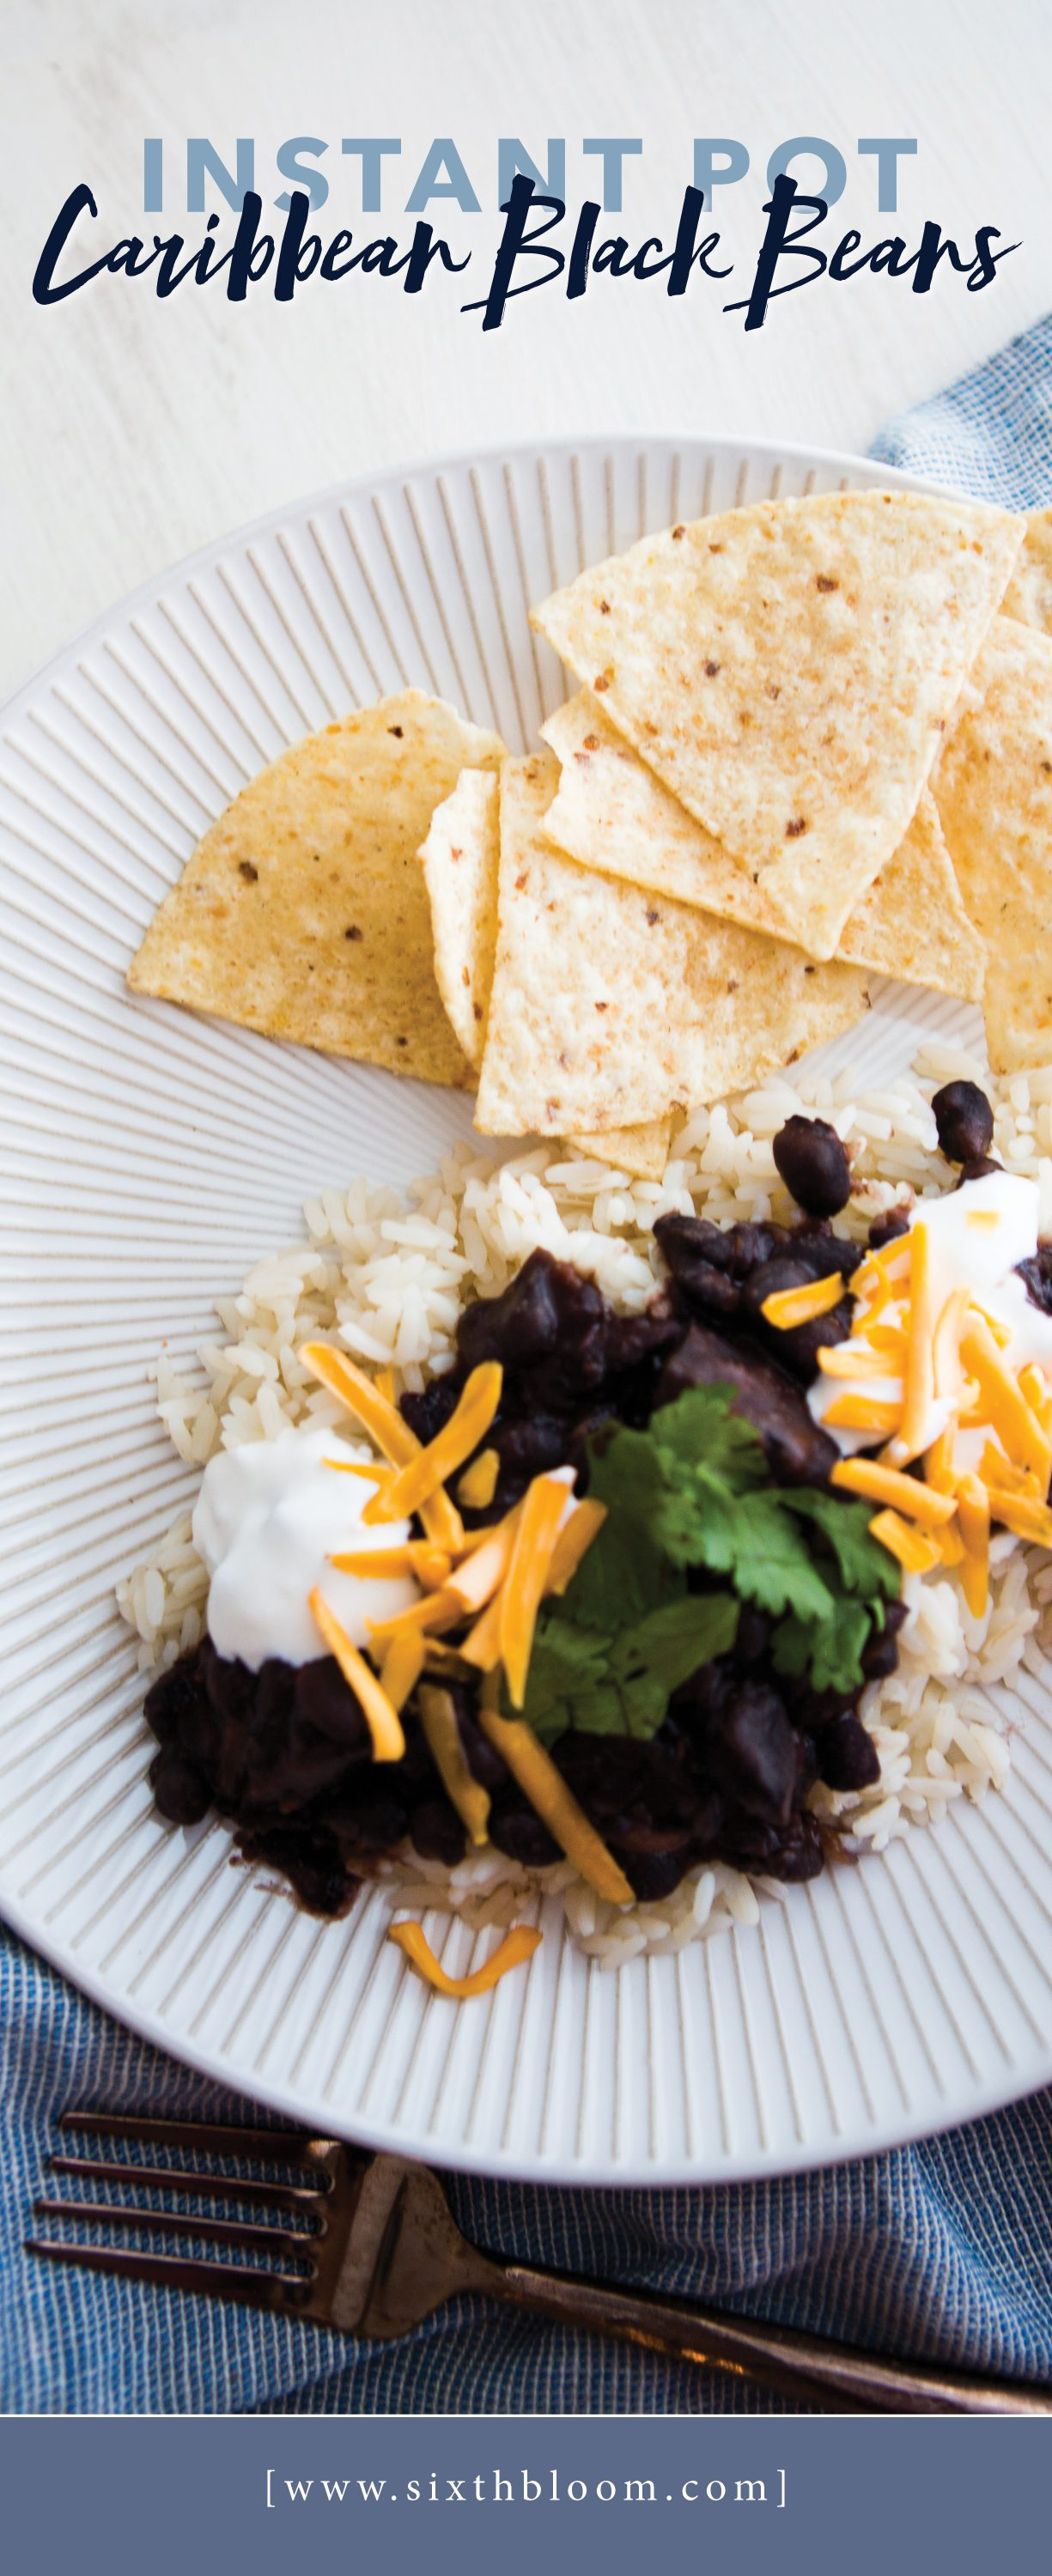 Instant Pot Caribbean Black Bean Recipe